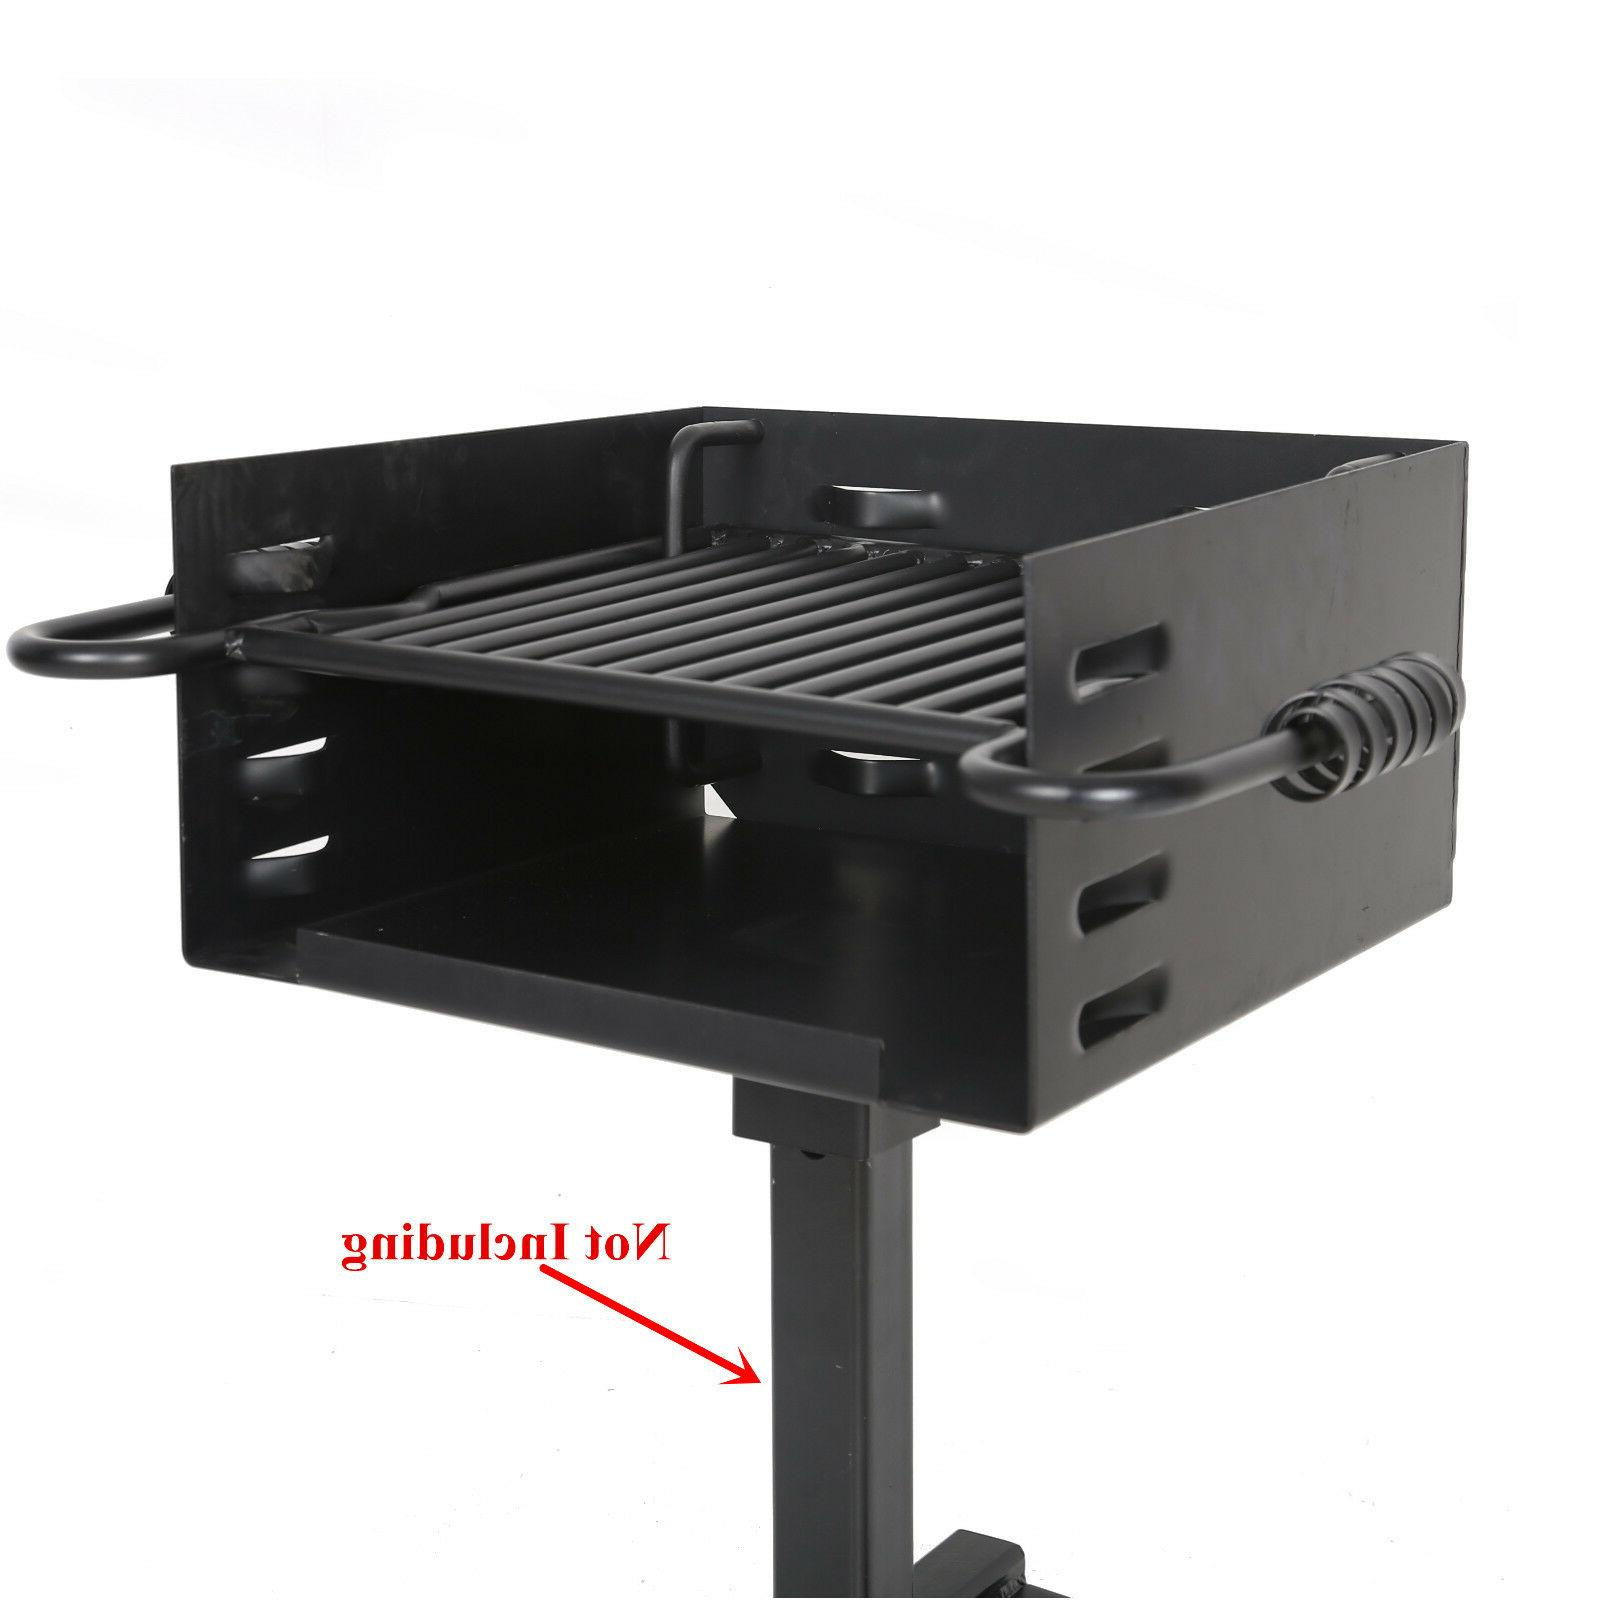 Outdoor Style Barbecue Patio Meat Cooker BBQ Backyard Camping